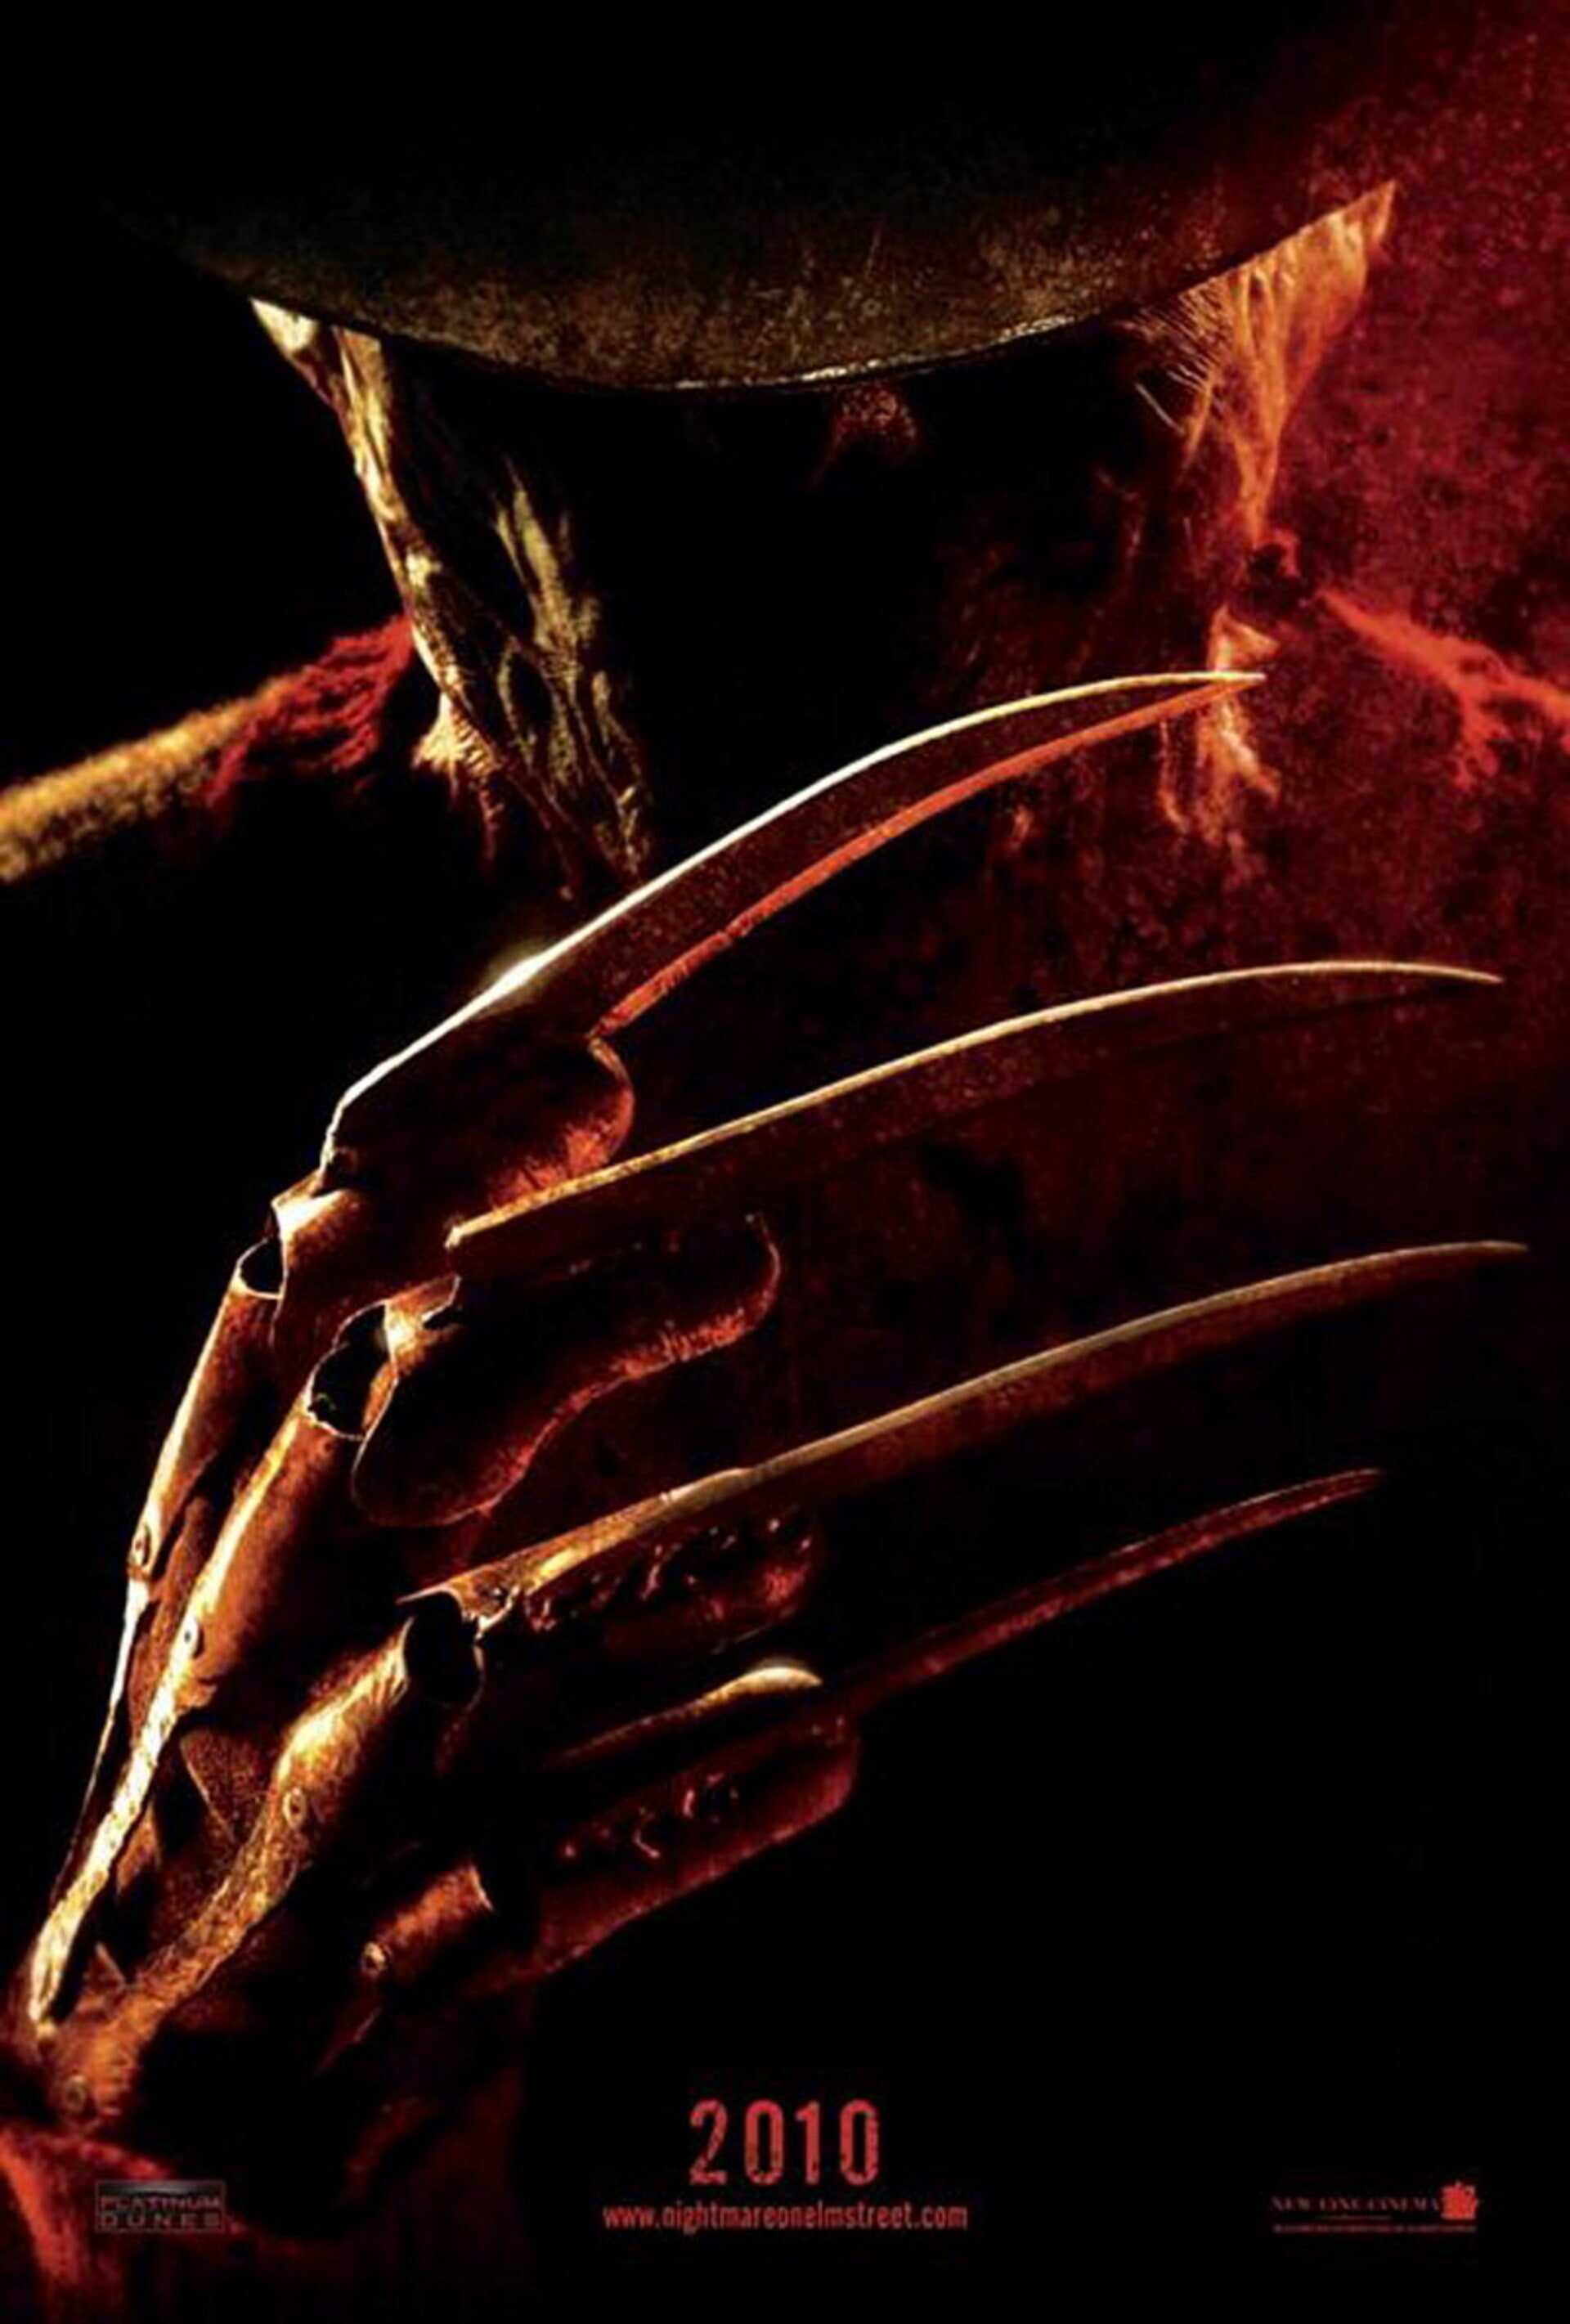 A Nightmare on Elm Street (2010) - Poster 1